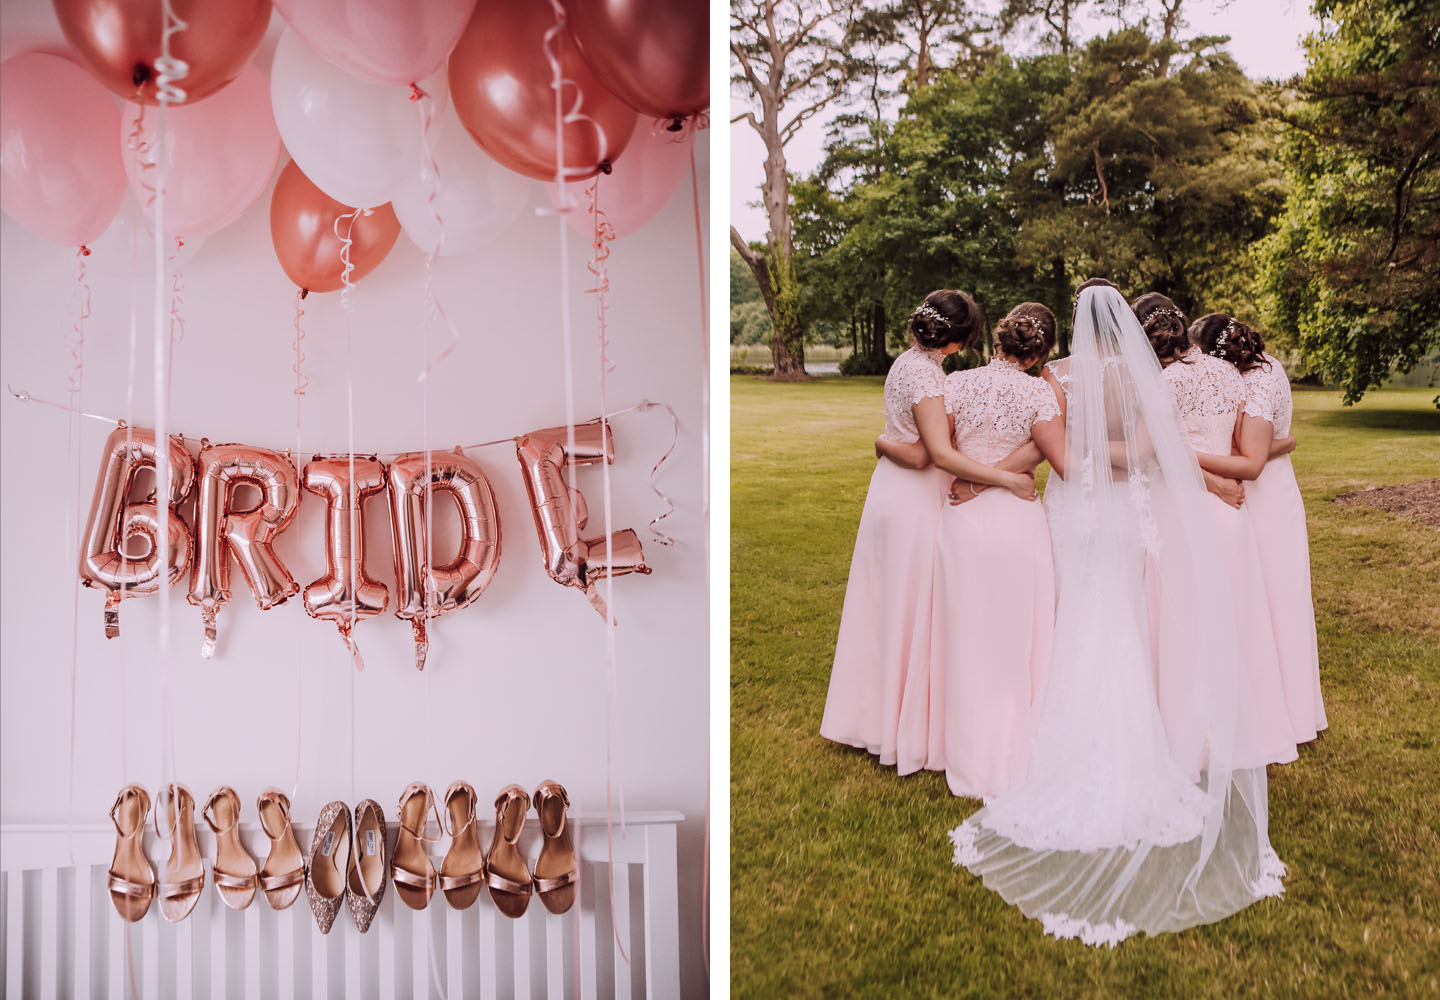 A Pink and White Wedding Colour Scheme in South Wales Blog - The Foil Invite Company